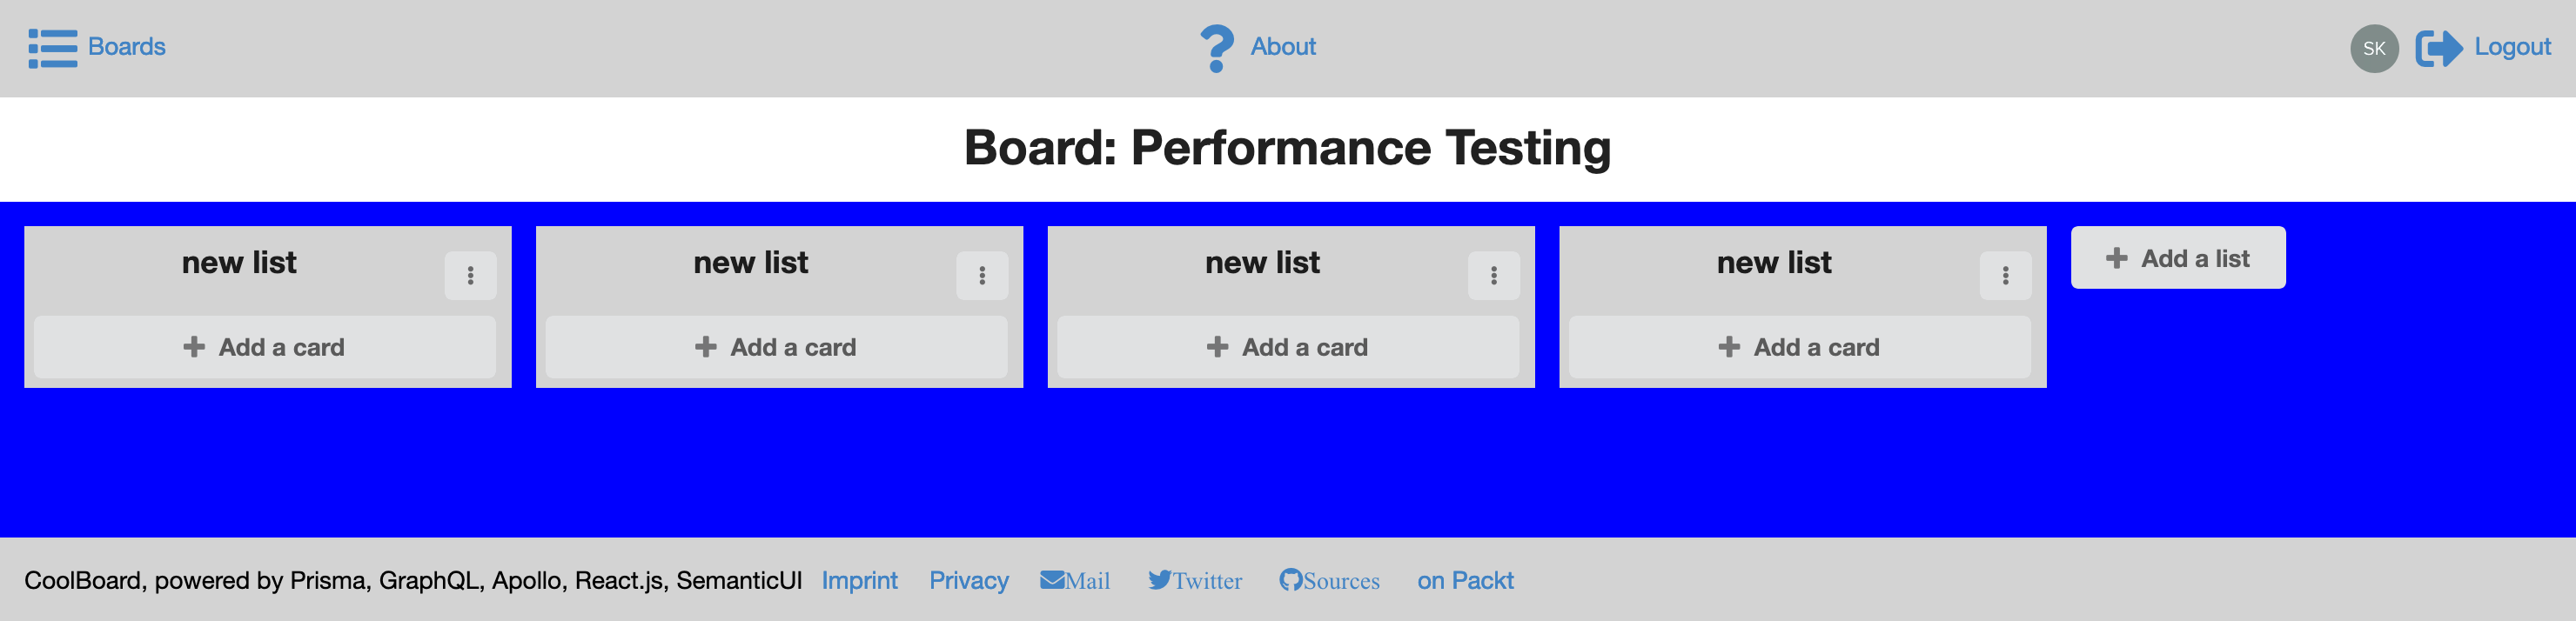 loading board page - first part